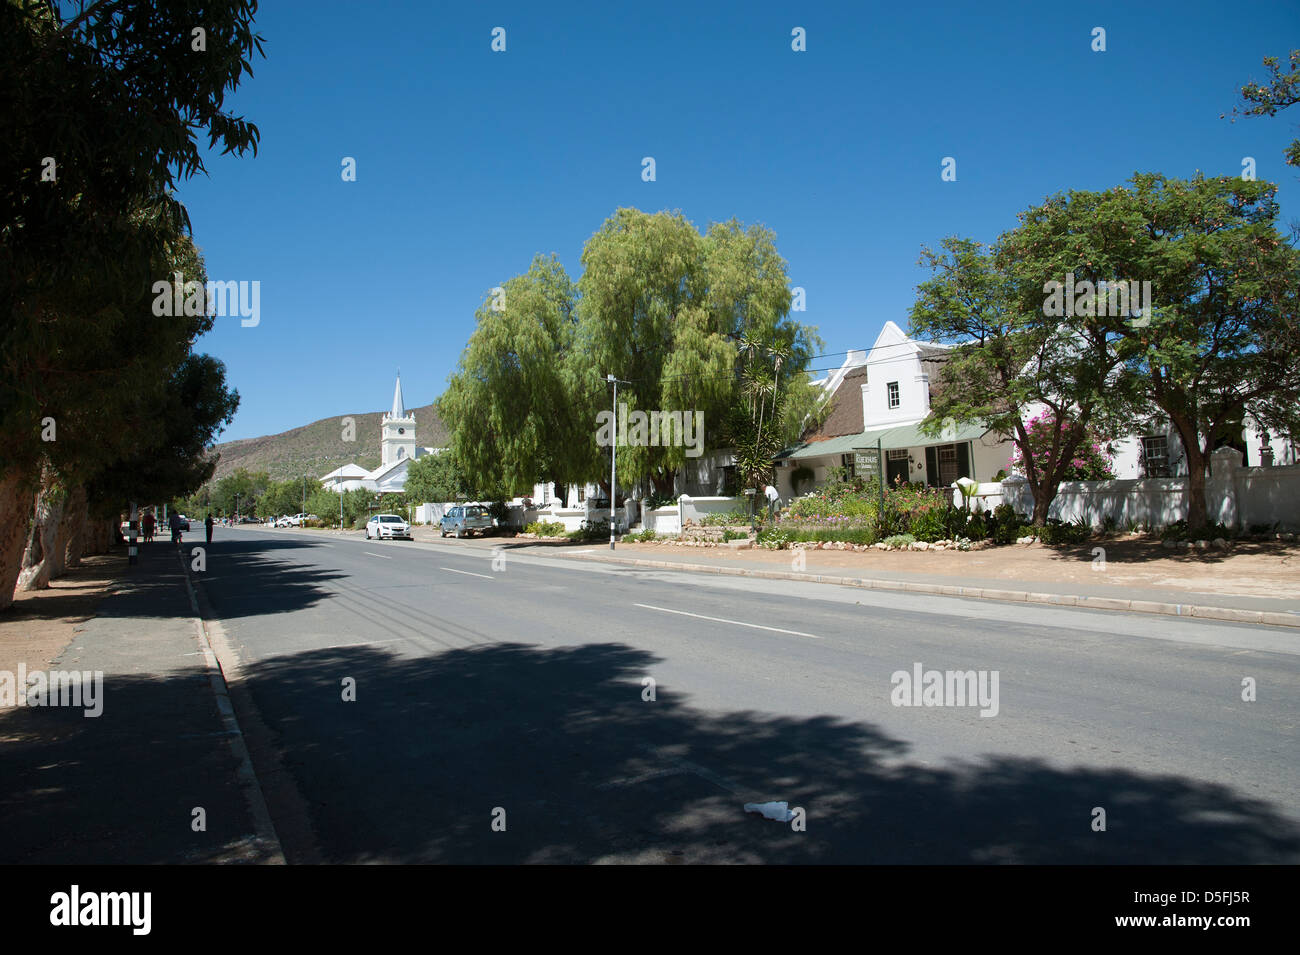 Main street and church in the Karoo town of Prince Albert South Africa - Stock Image